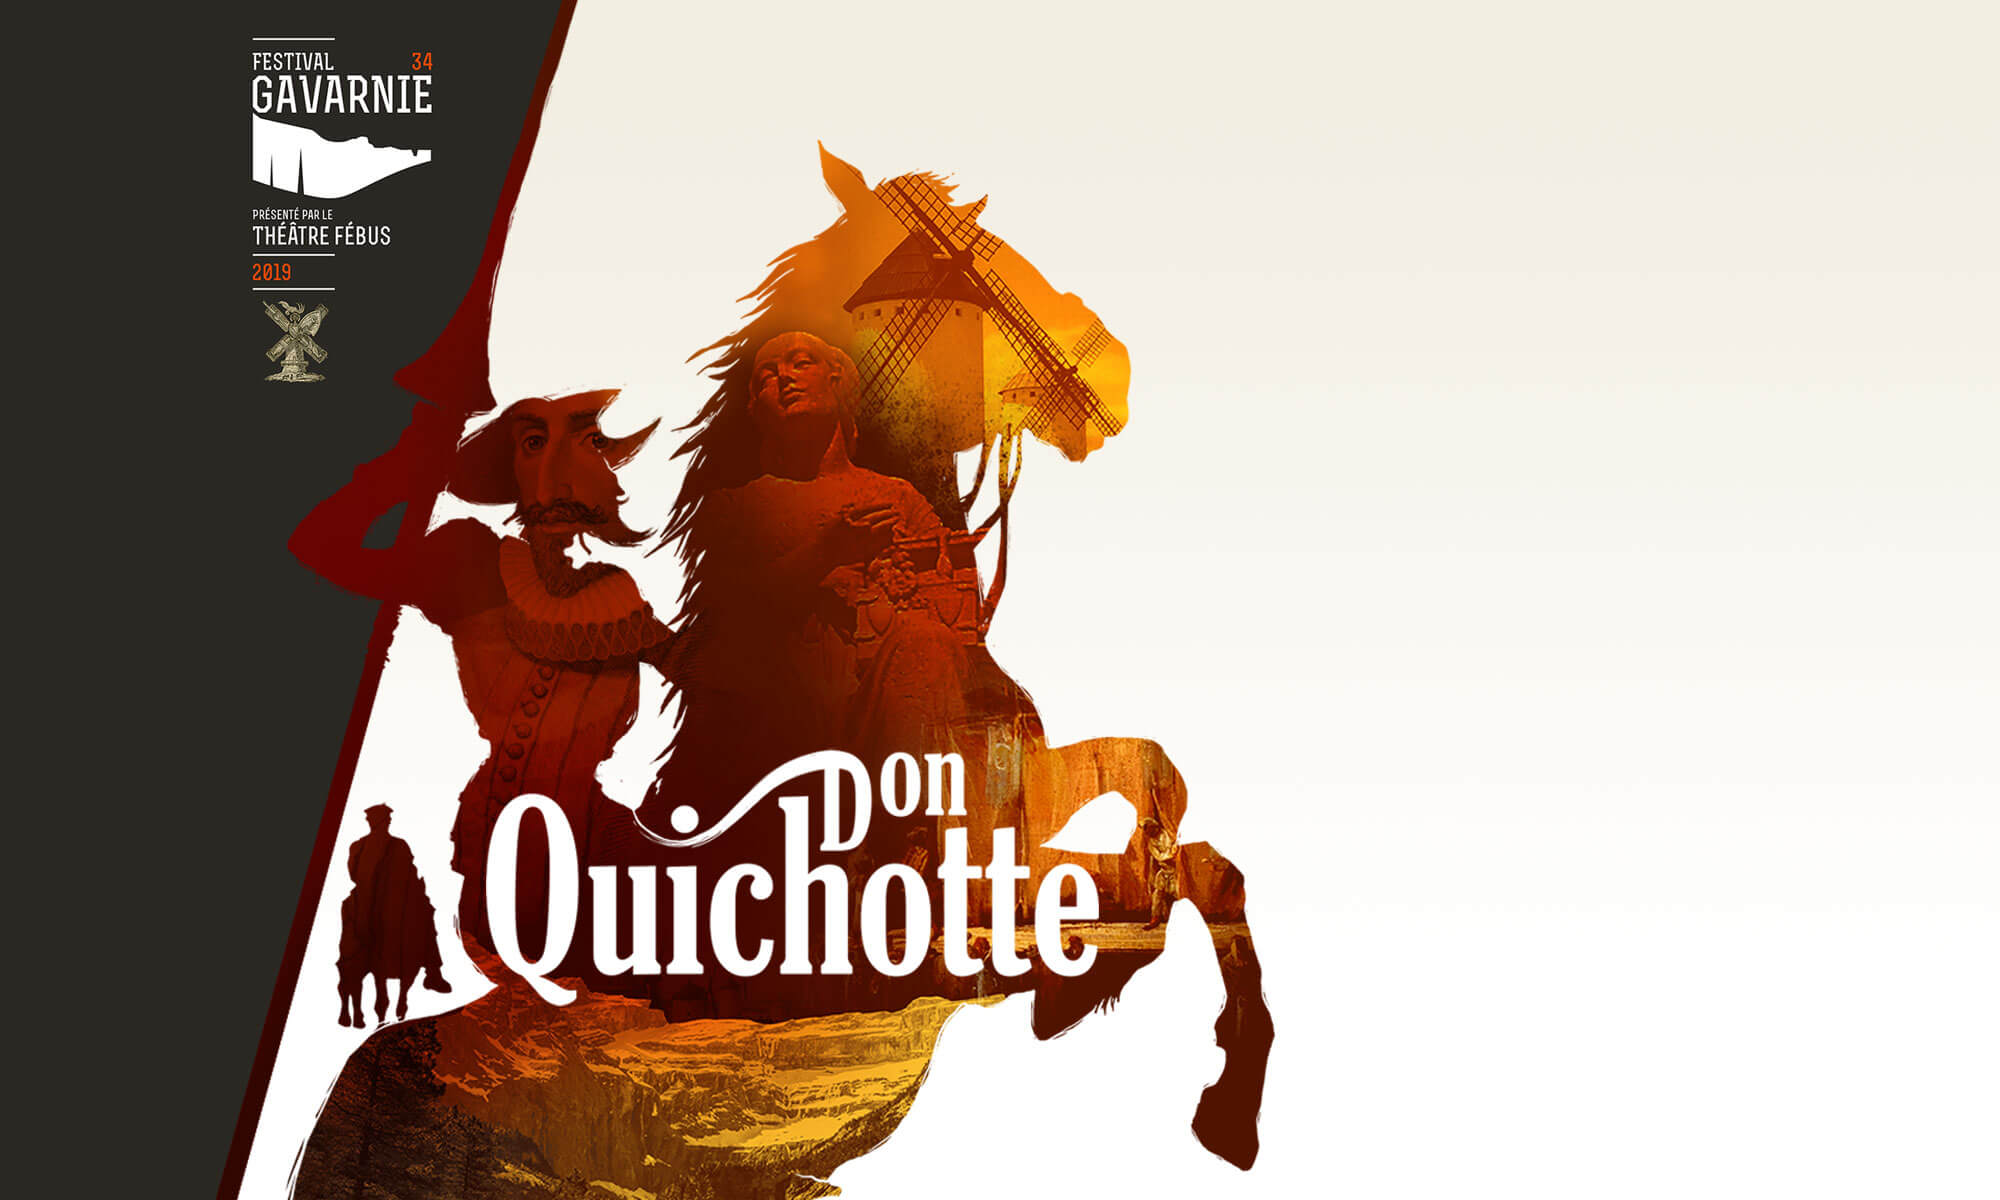 Don Quichotte de Cervantes